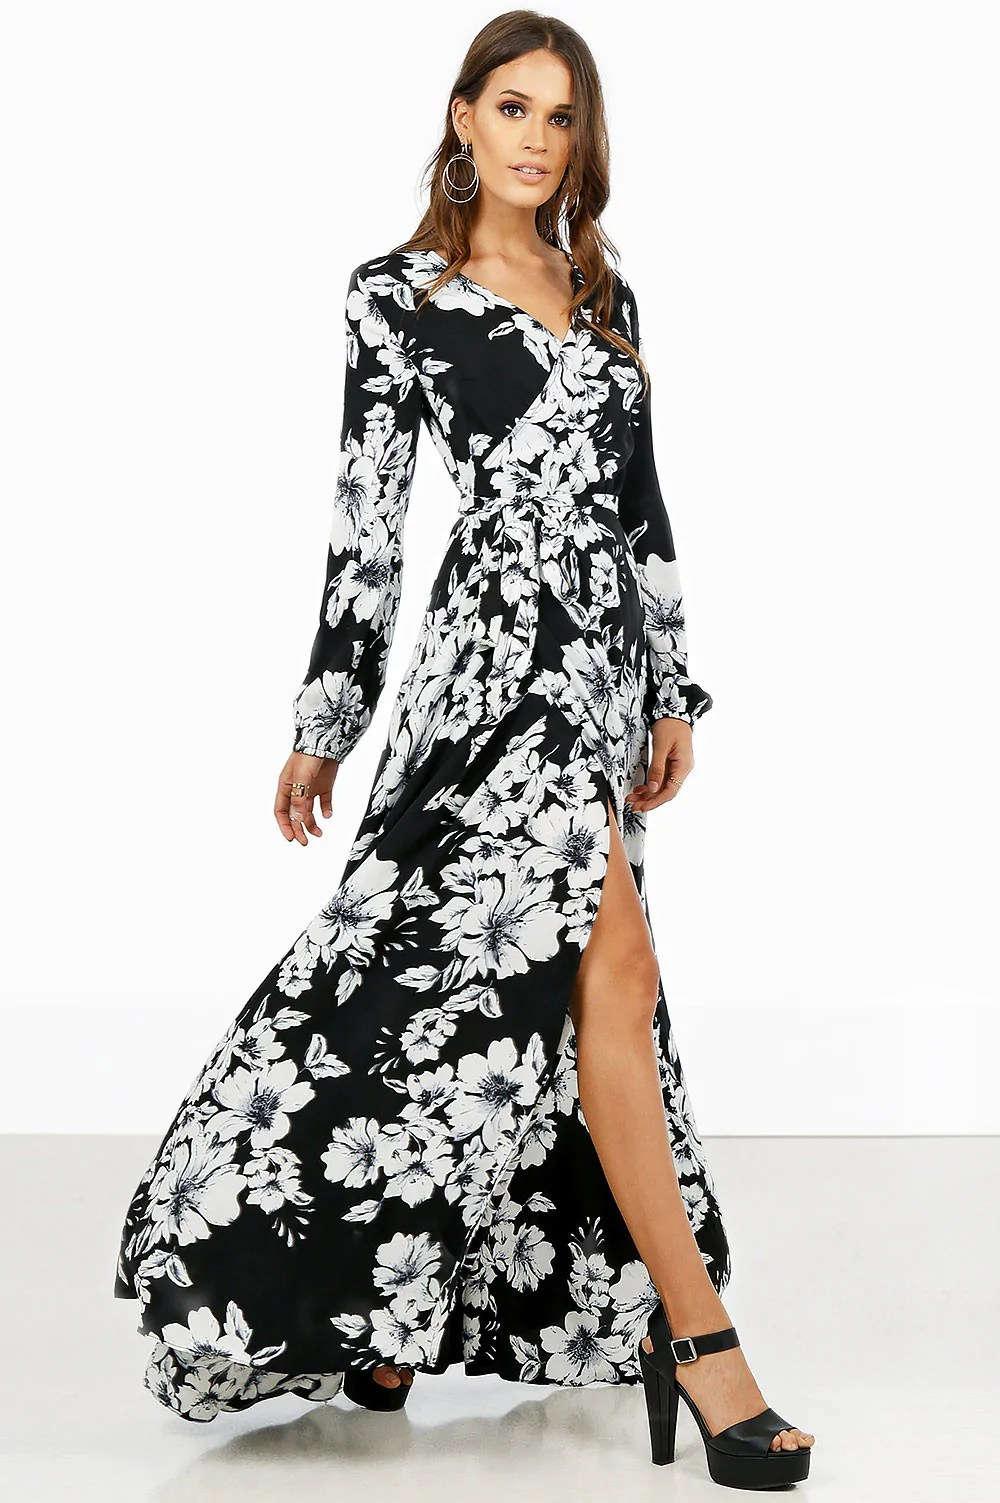 Long Sleeve Black And White Floral Dress